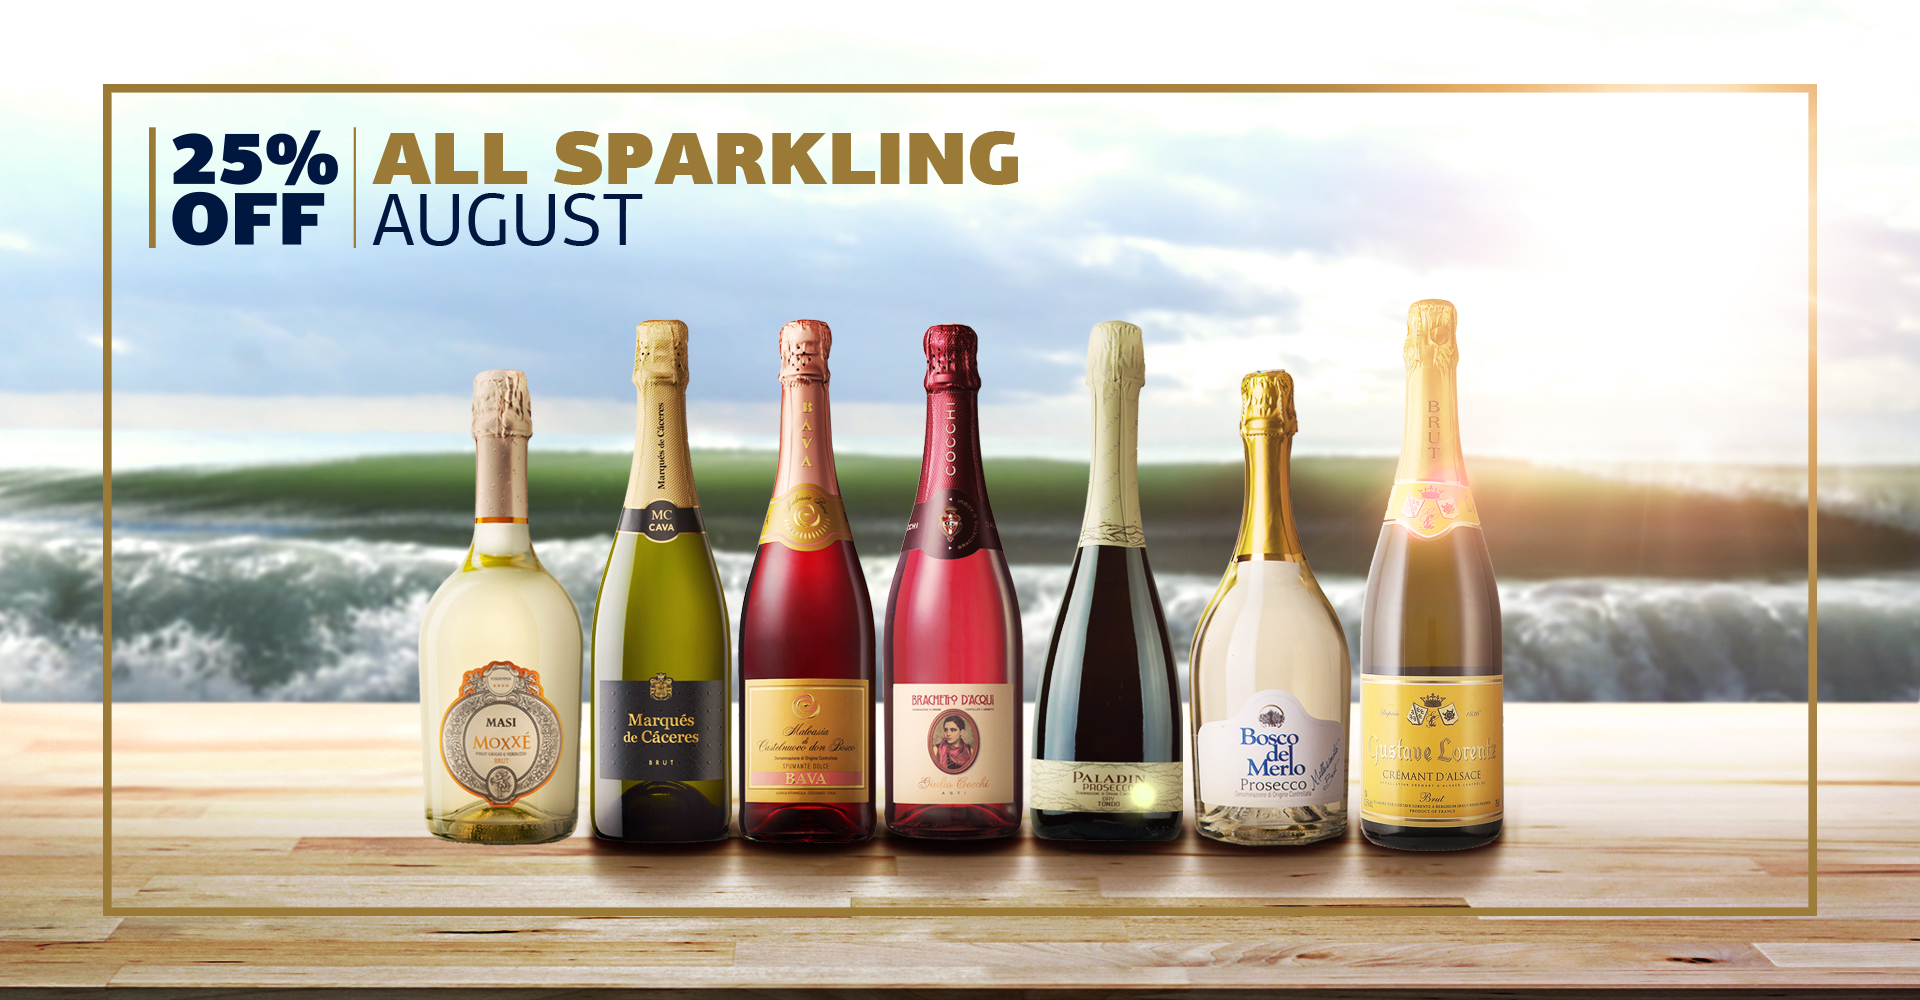 ALL-SPARKLING-AUGUST-WEB-1